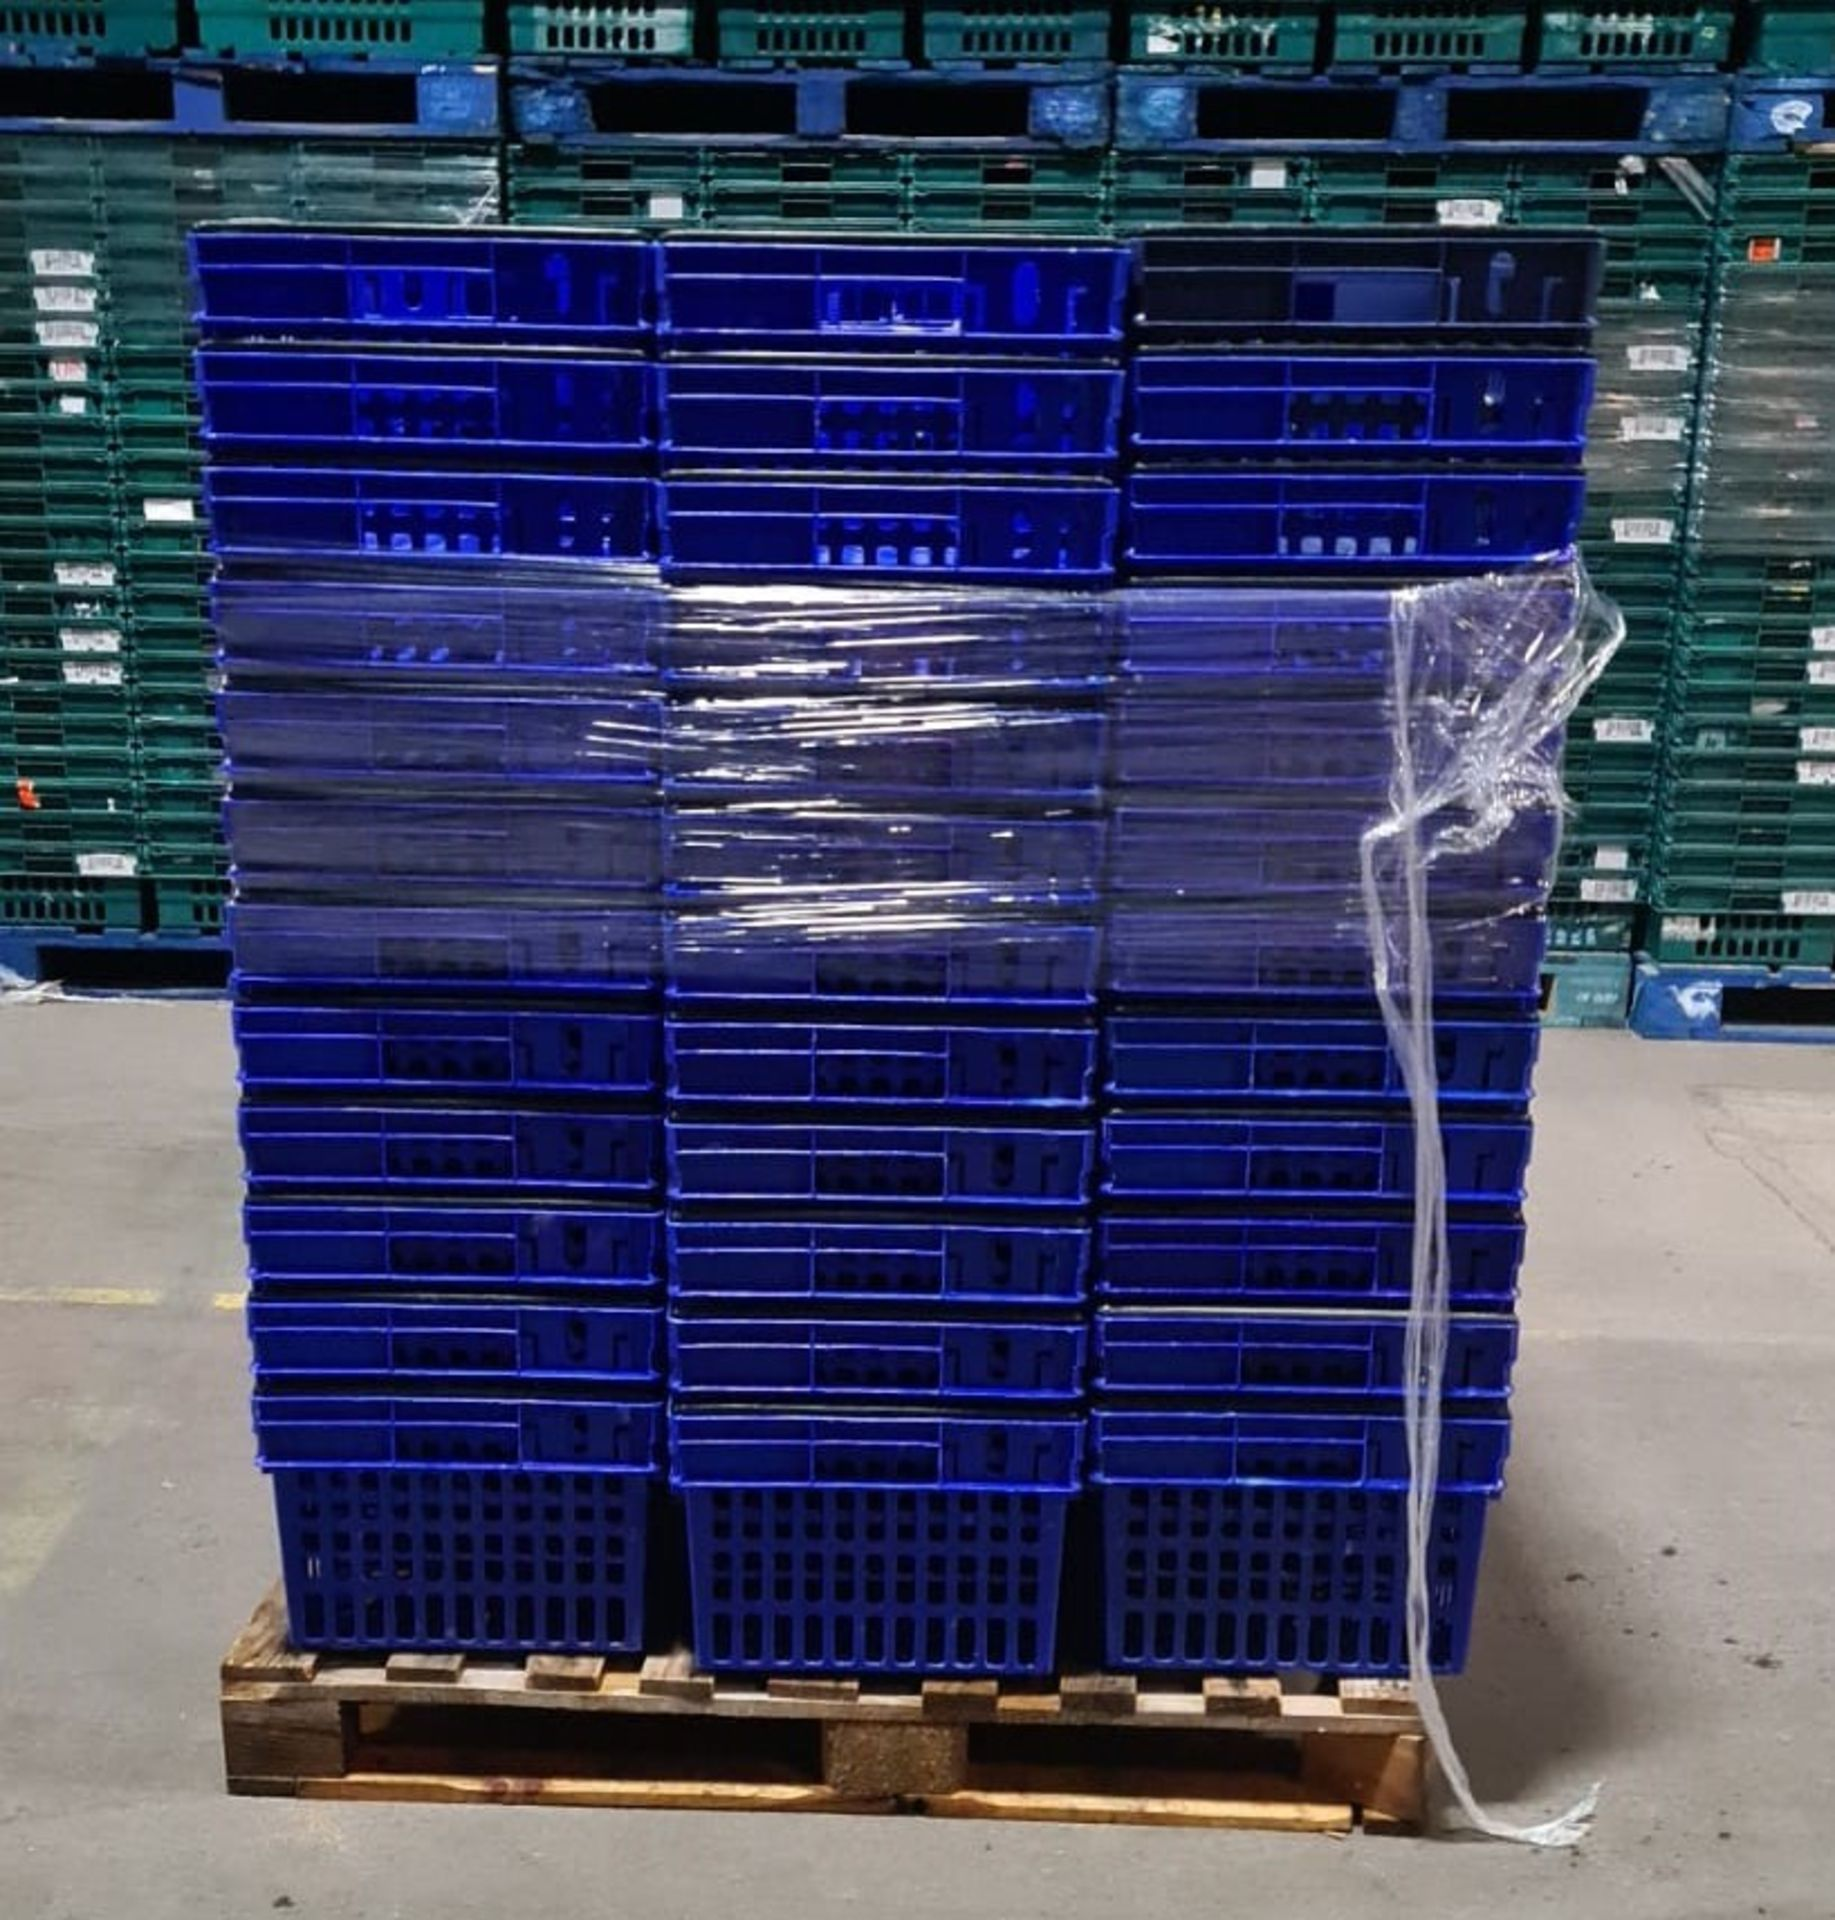 Pallet of 60 x 55Ltr Ventilated stacking & nesting crates/totes from M&S. - Image 3 of 4